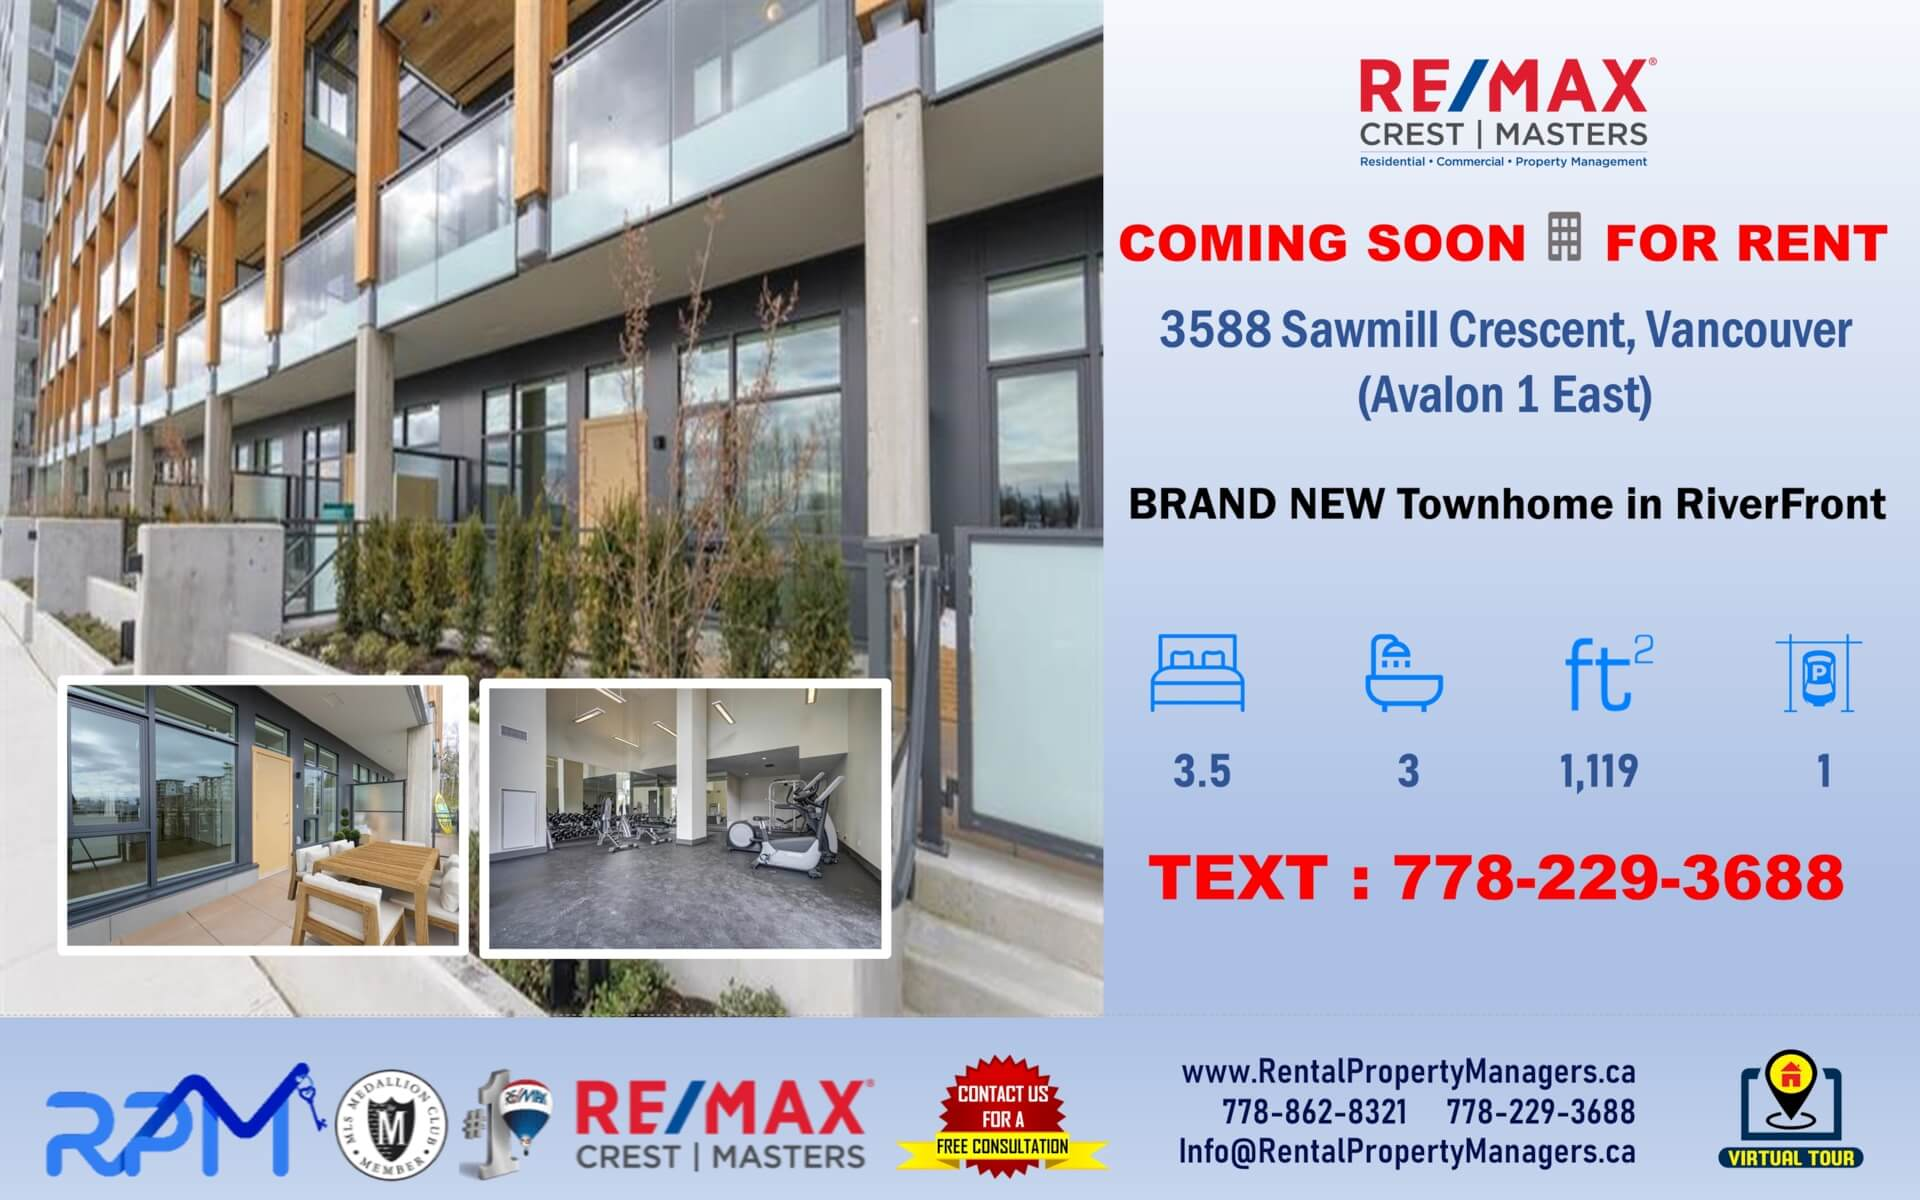 RentalPropertyManagers.ca-3588 Sawmill Crescent, Vancouver (Avalon 1 East),